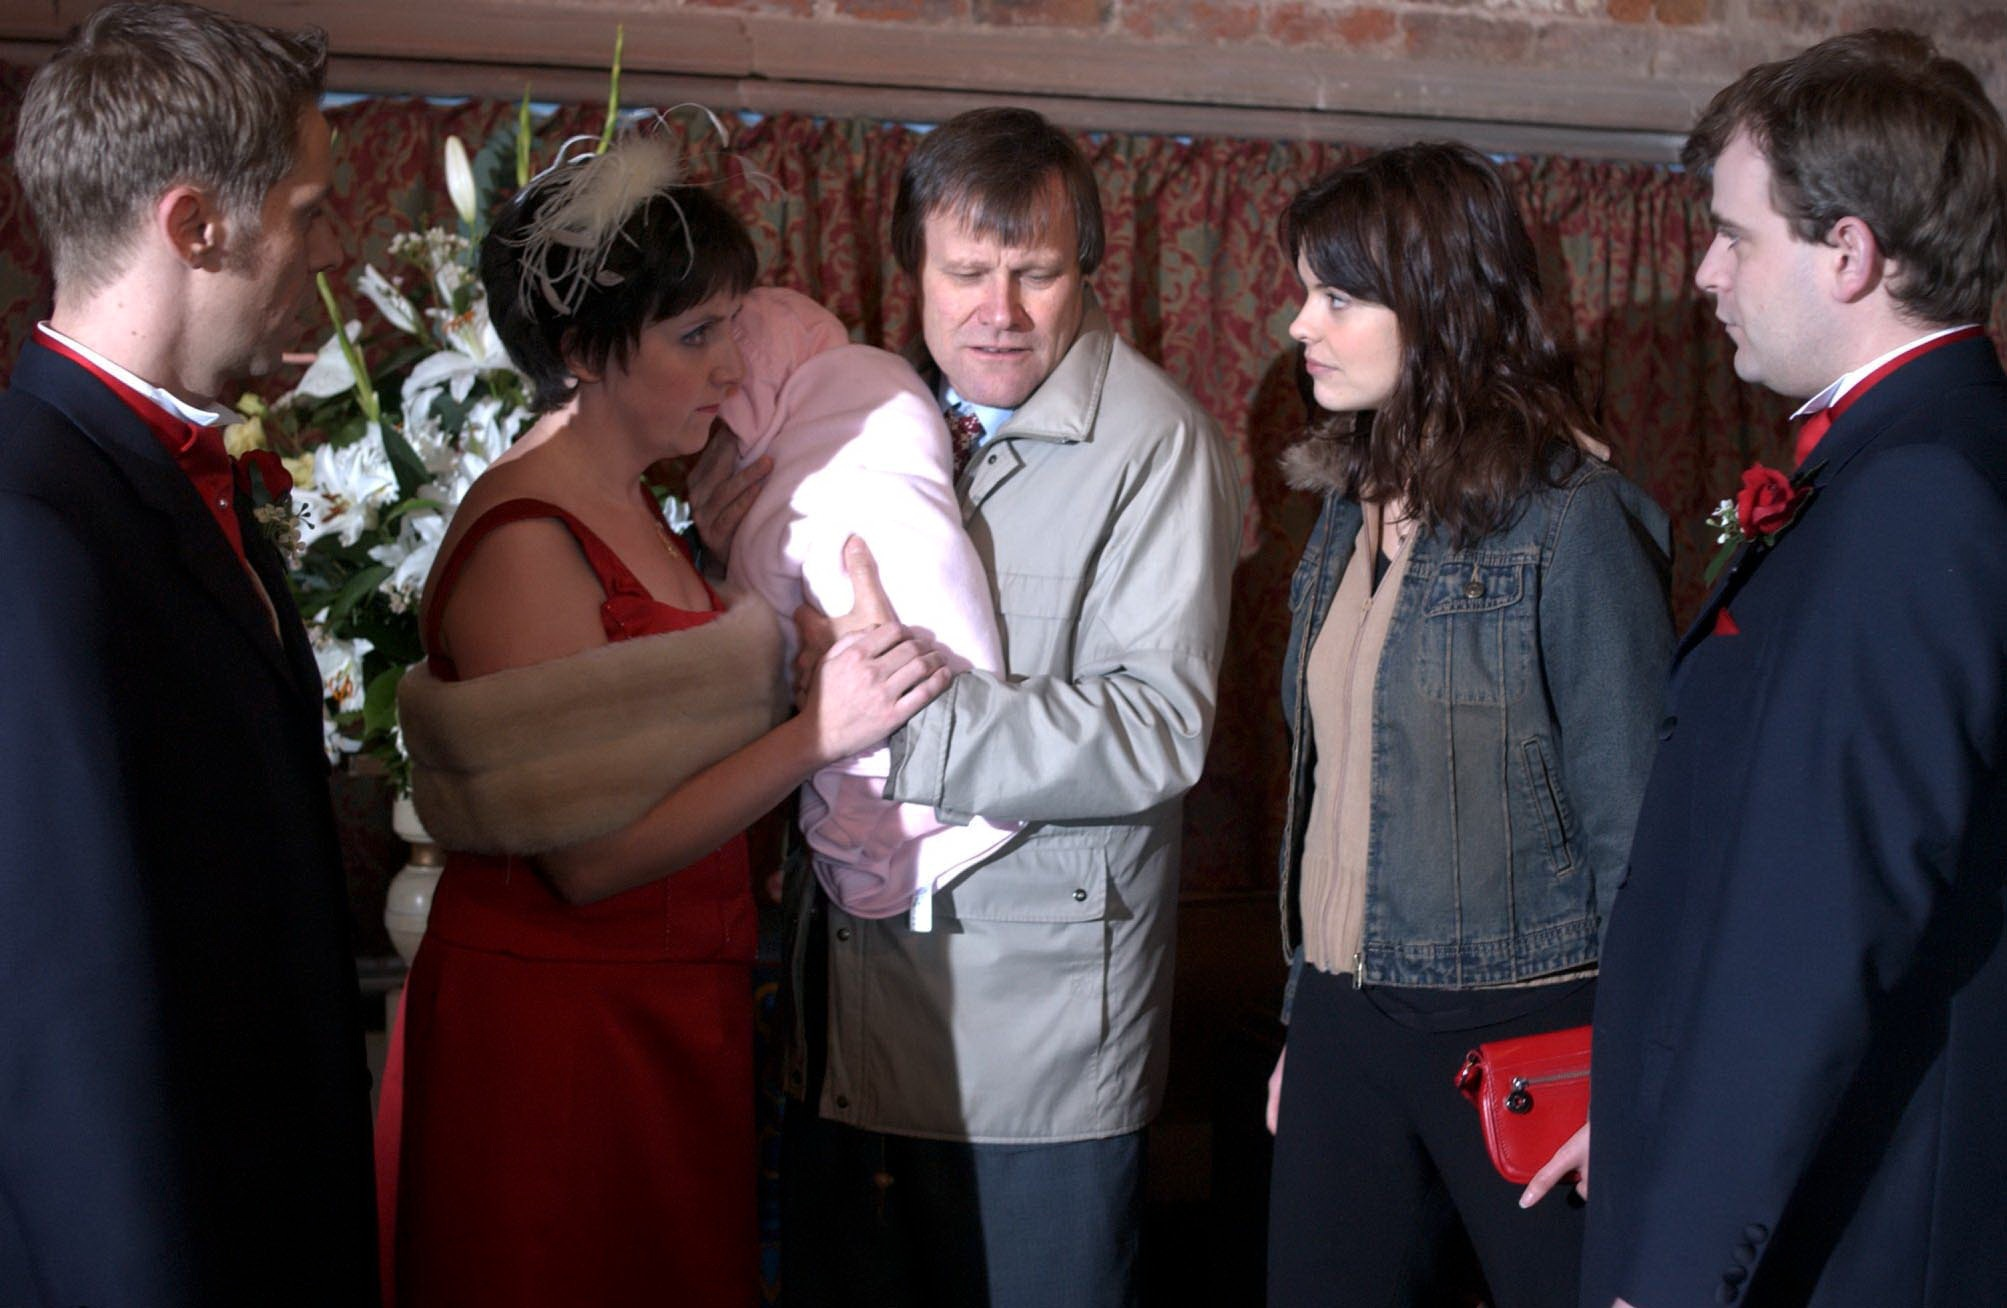 2004 - The day of Karen and Steve's Wedding has arrived, but with Tracy Barlow determined to upset the day's proceedings it's bound to be a memorable day. However, will this be the happiest day of their lives? PICTURED: Andy McDonald (NICK COCHRANE), Hayley Cropper (JULIE HESMONDHALGH), Roy Cropper (DAVID NEILSON), Tracy Barlow (KATE FORD) and Steve McDonald (SIMON GREGSON). ITV ARCHIVE